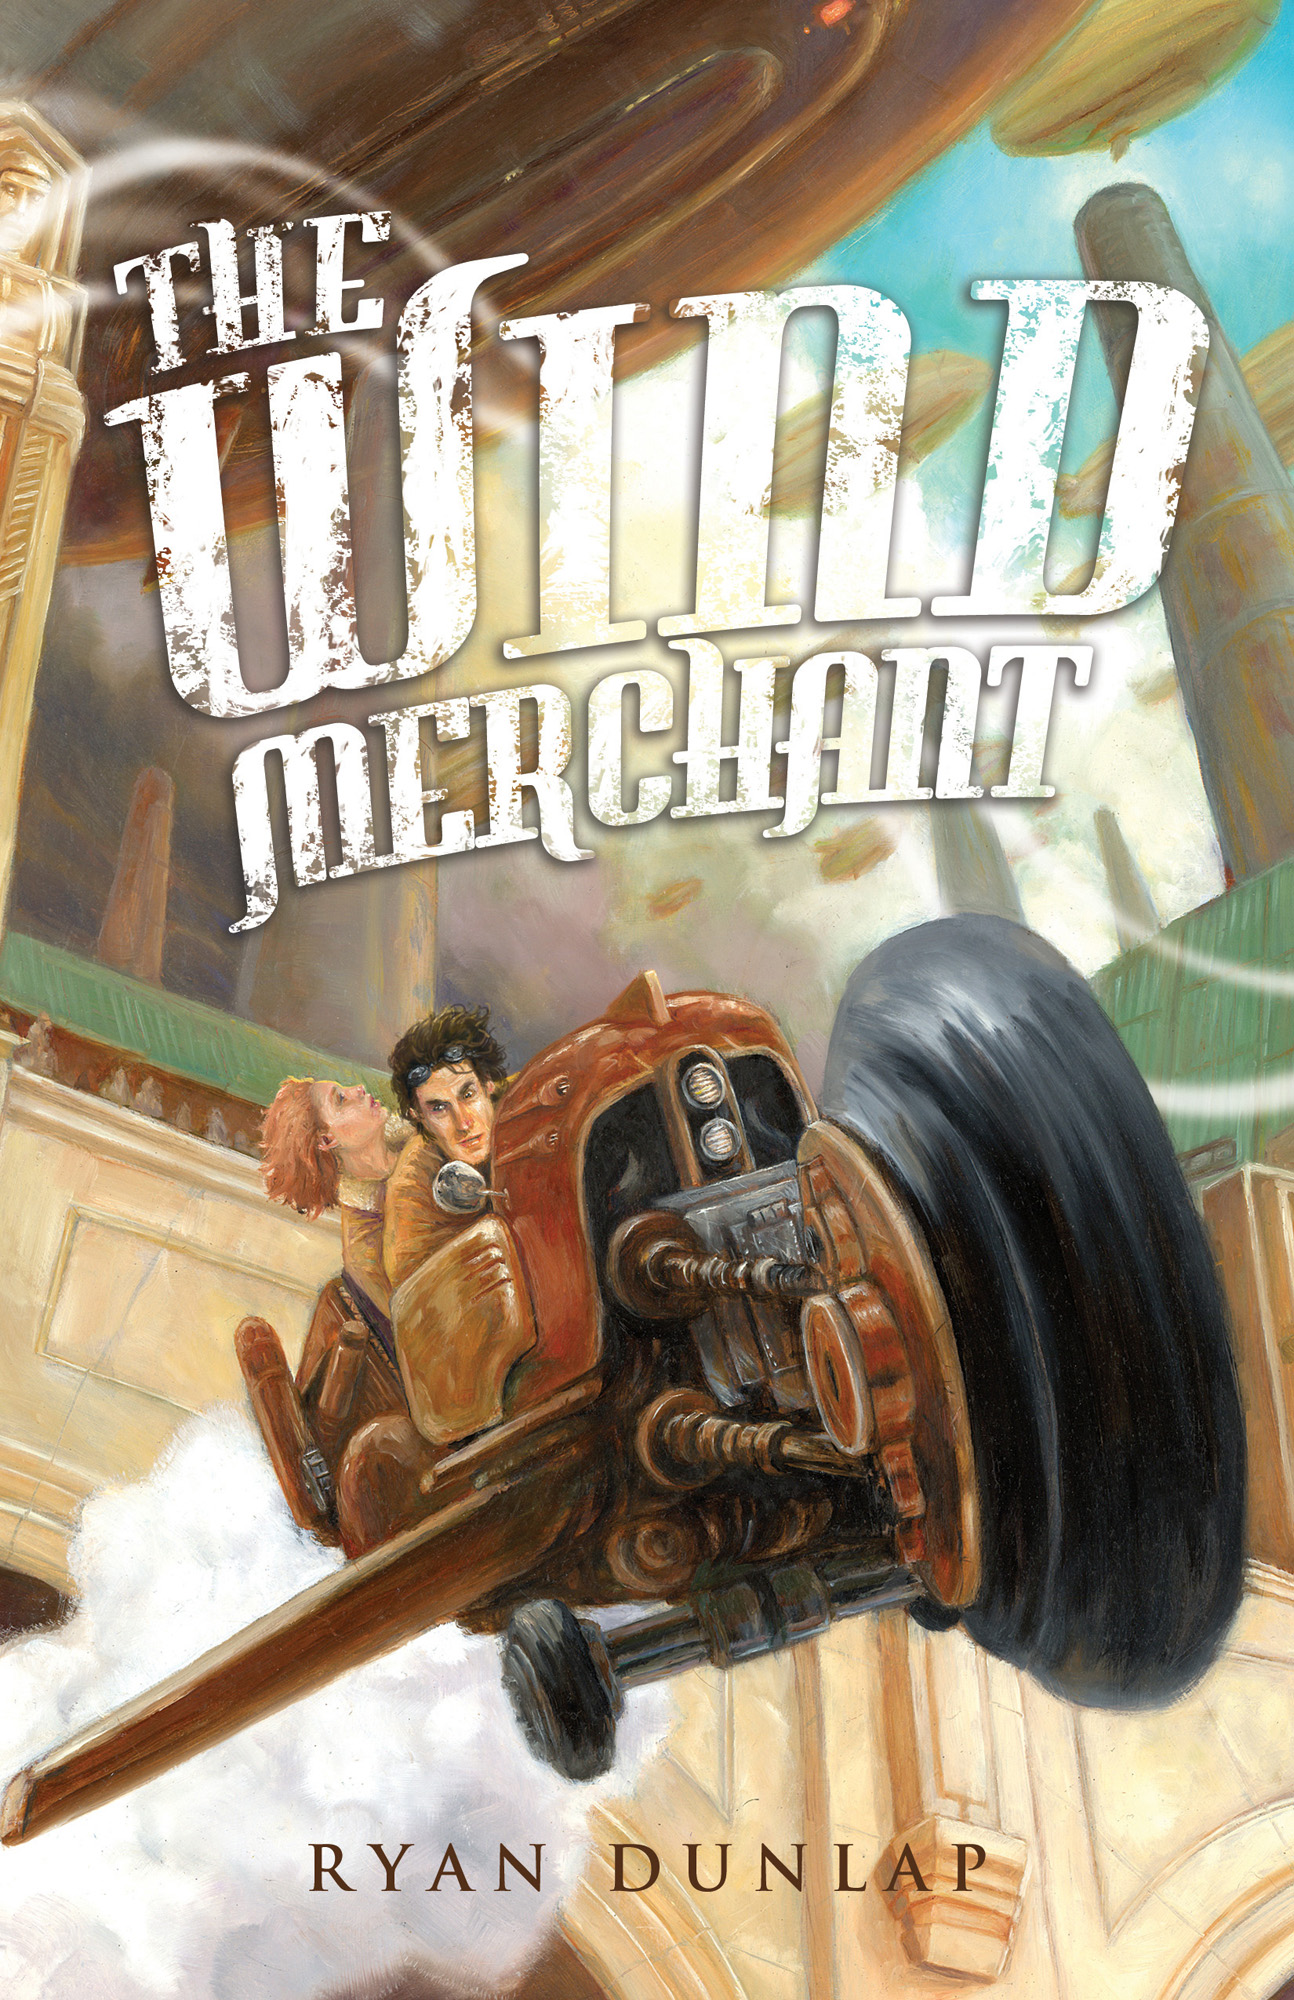 The Wind Merchant eBook pack (DRM-free) sold by Fictionsmith Ink